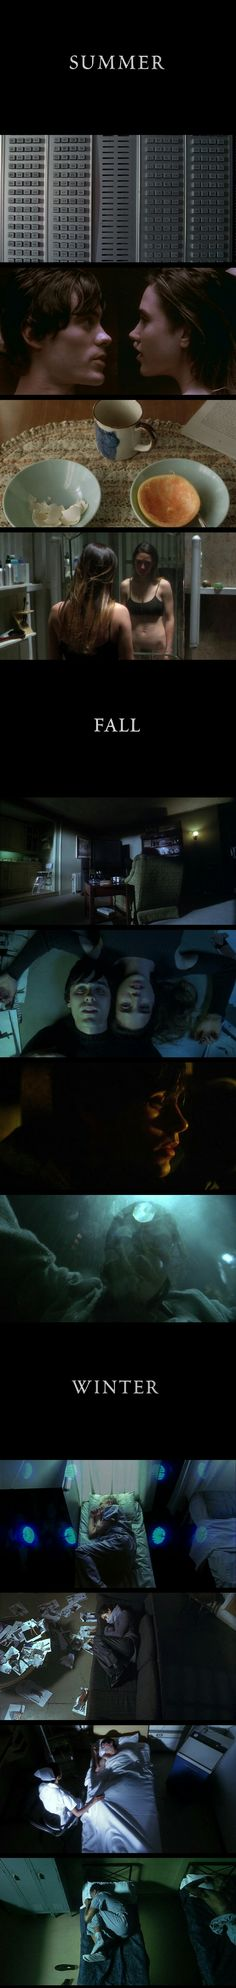 Requiem for a Dream(2000) Directed by Darren Aronofsky. Cinematogrphy by Matthew Libatique.